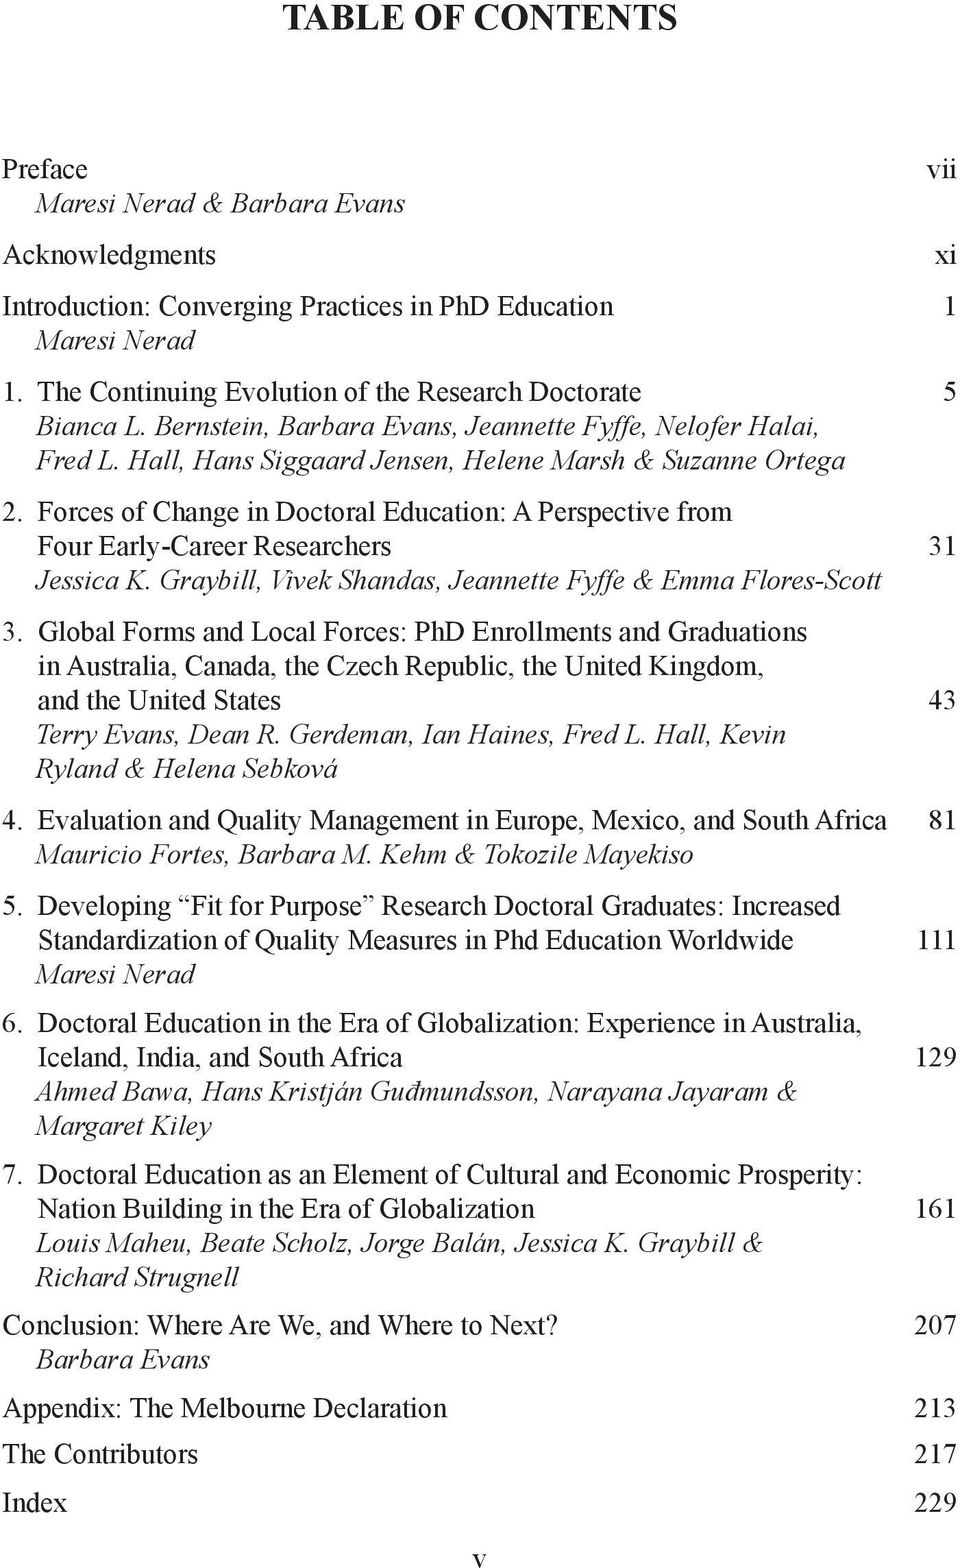 Forces of Change in Doctoral Education: A Perspective from Four Early-Career Researchers 31 Jessica K. Graybill, Vivek Shandas, Jeannette Fyffe & Emma Flores-Scott 3.